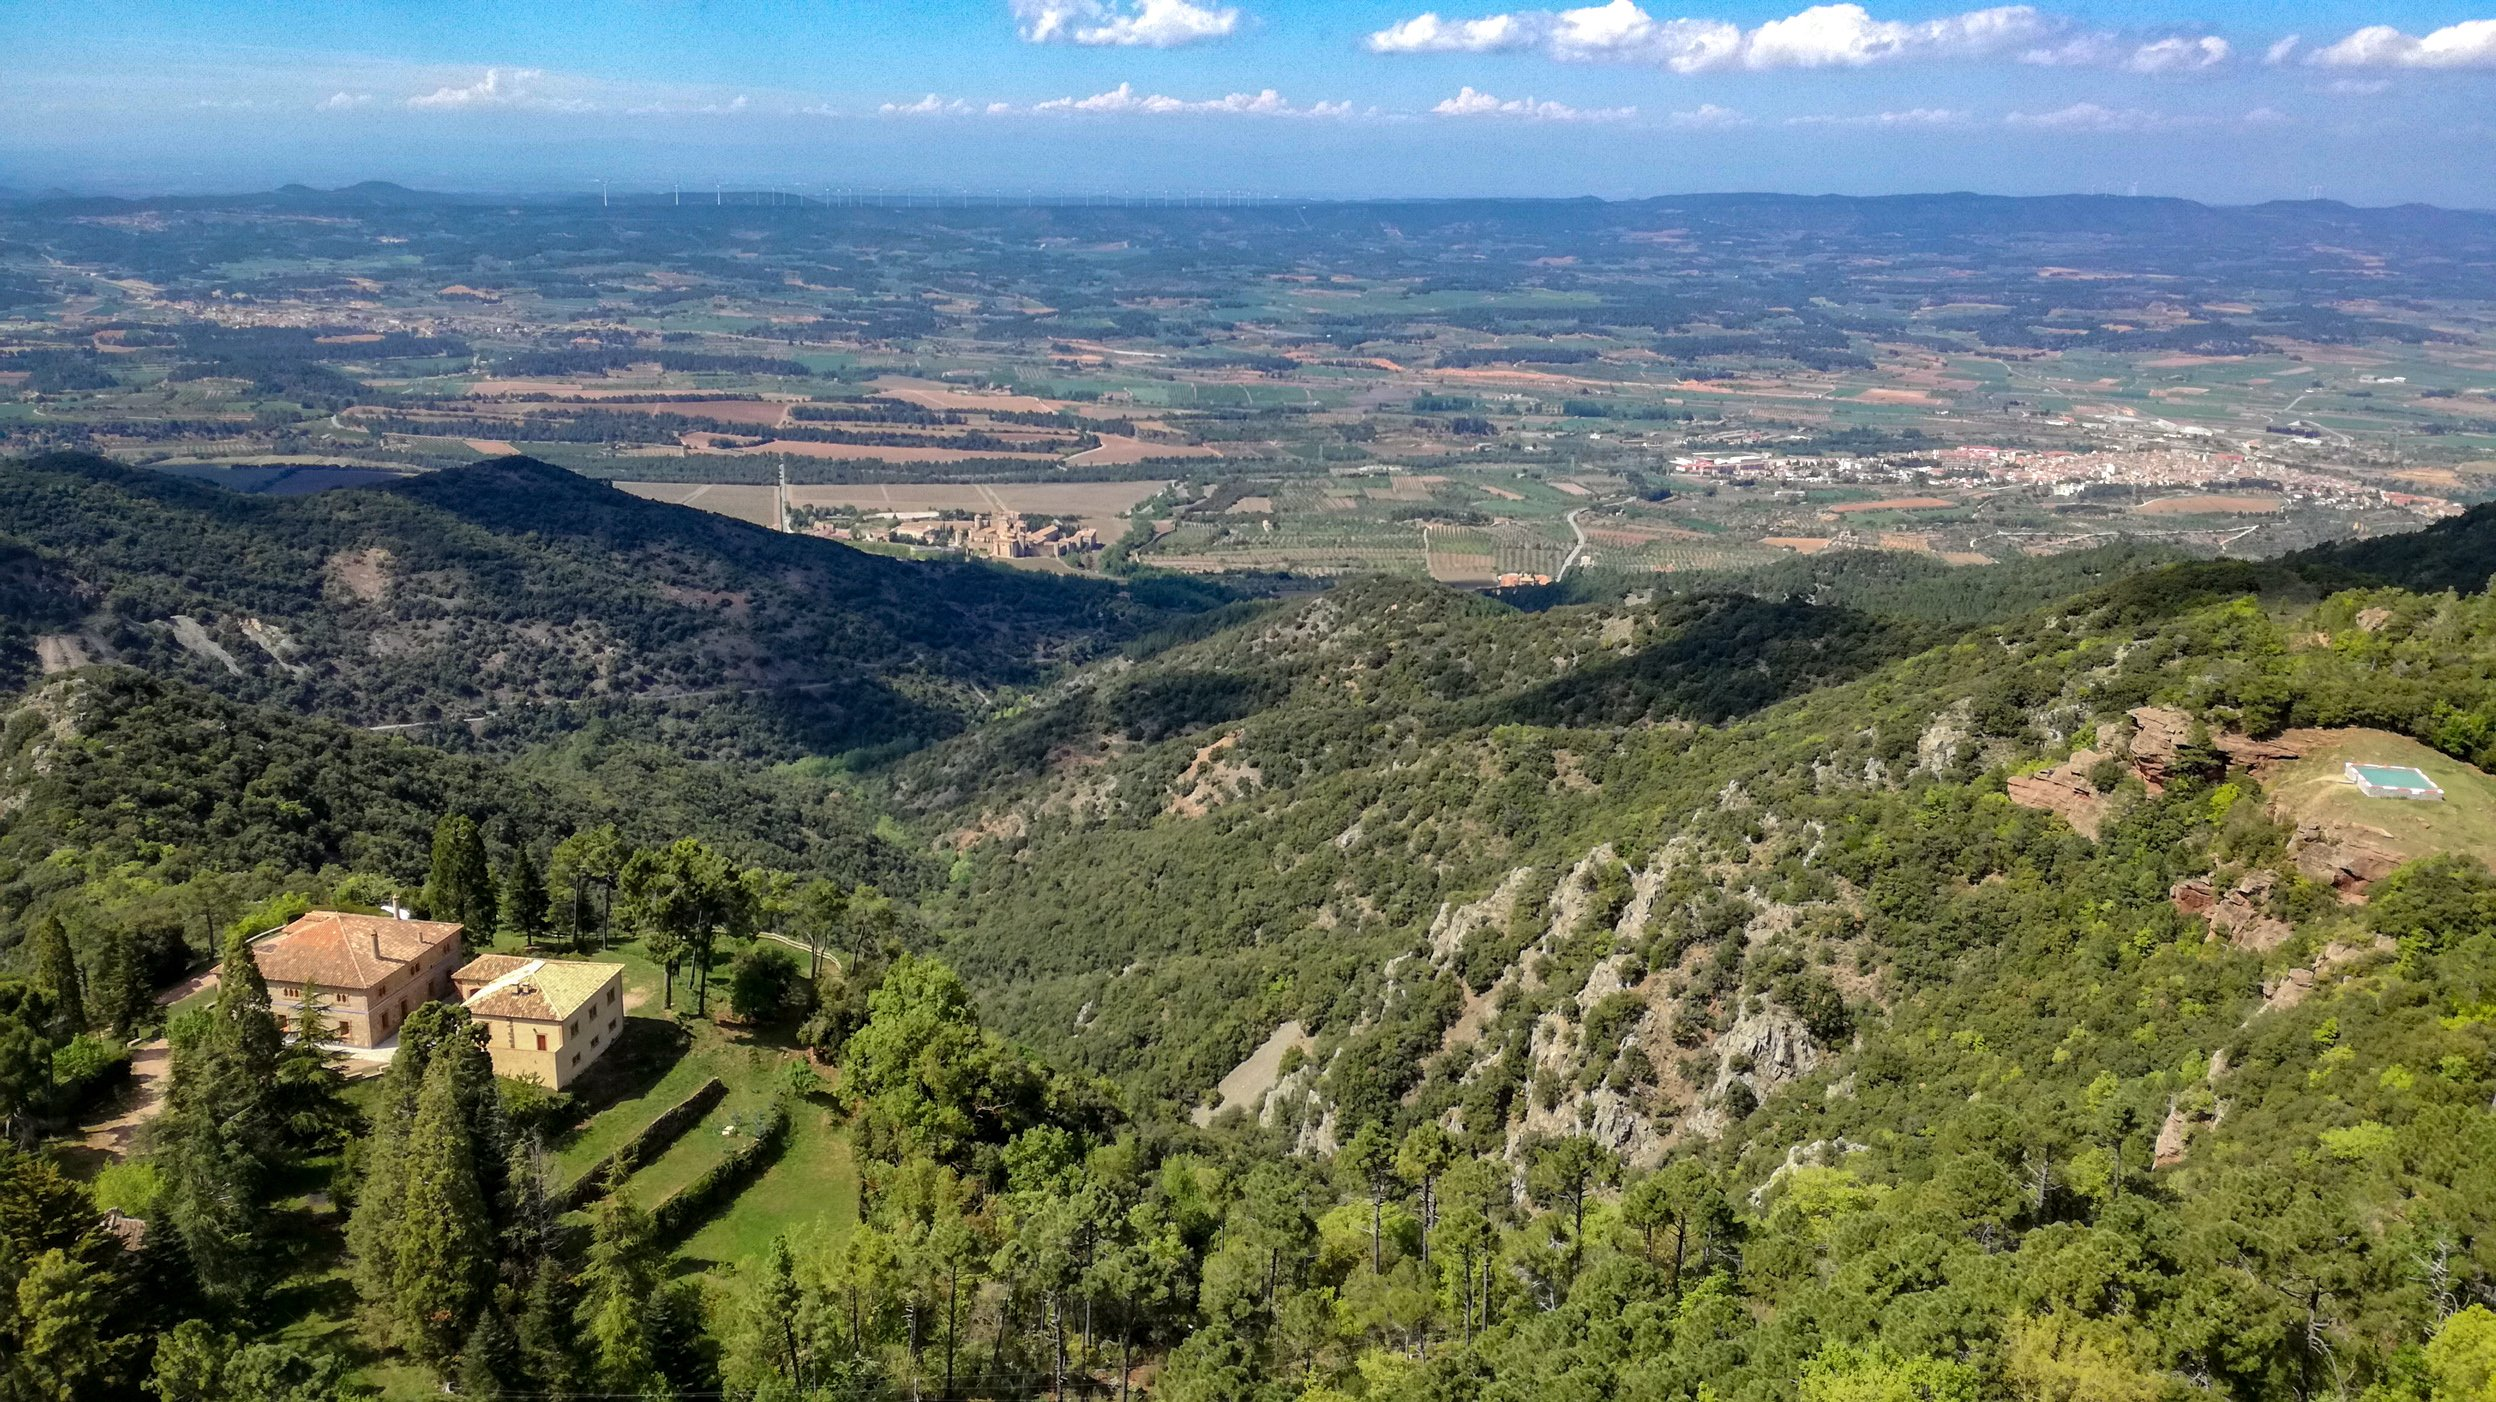 Poblet to de la Pena, Prades Mountains Hike. View from summit looking down to Poblet Monastery in the valley below